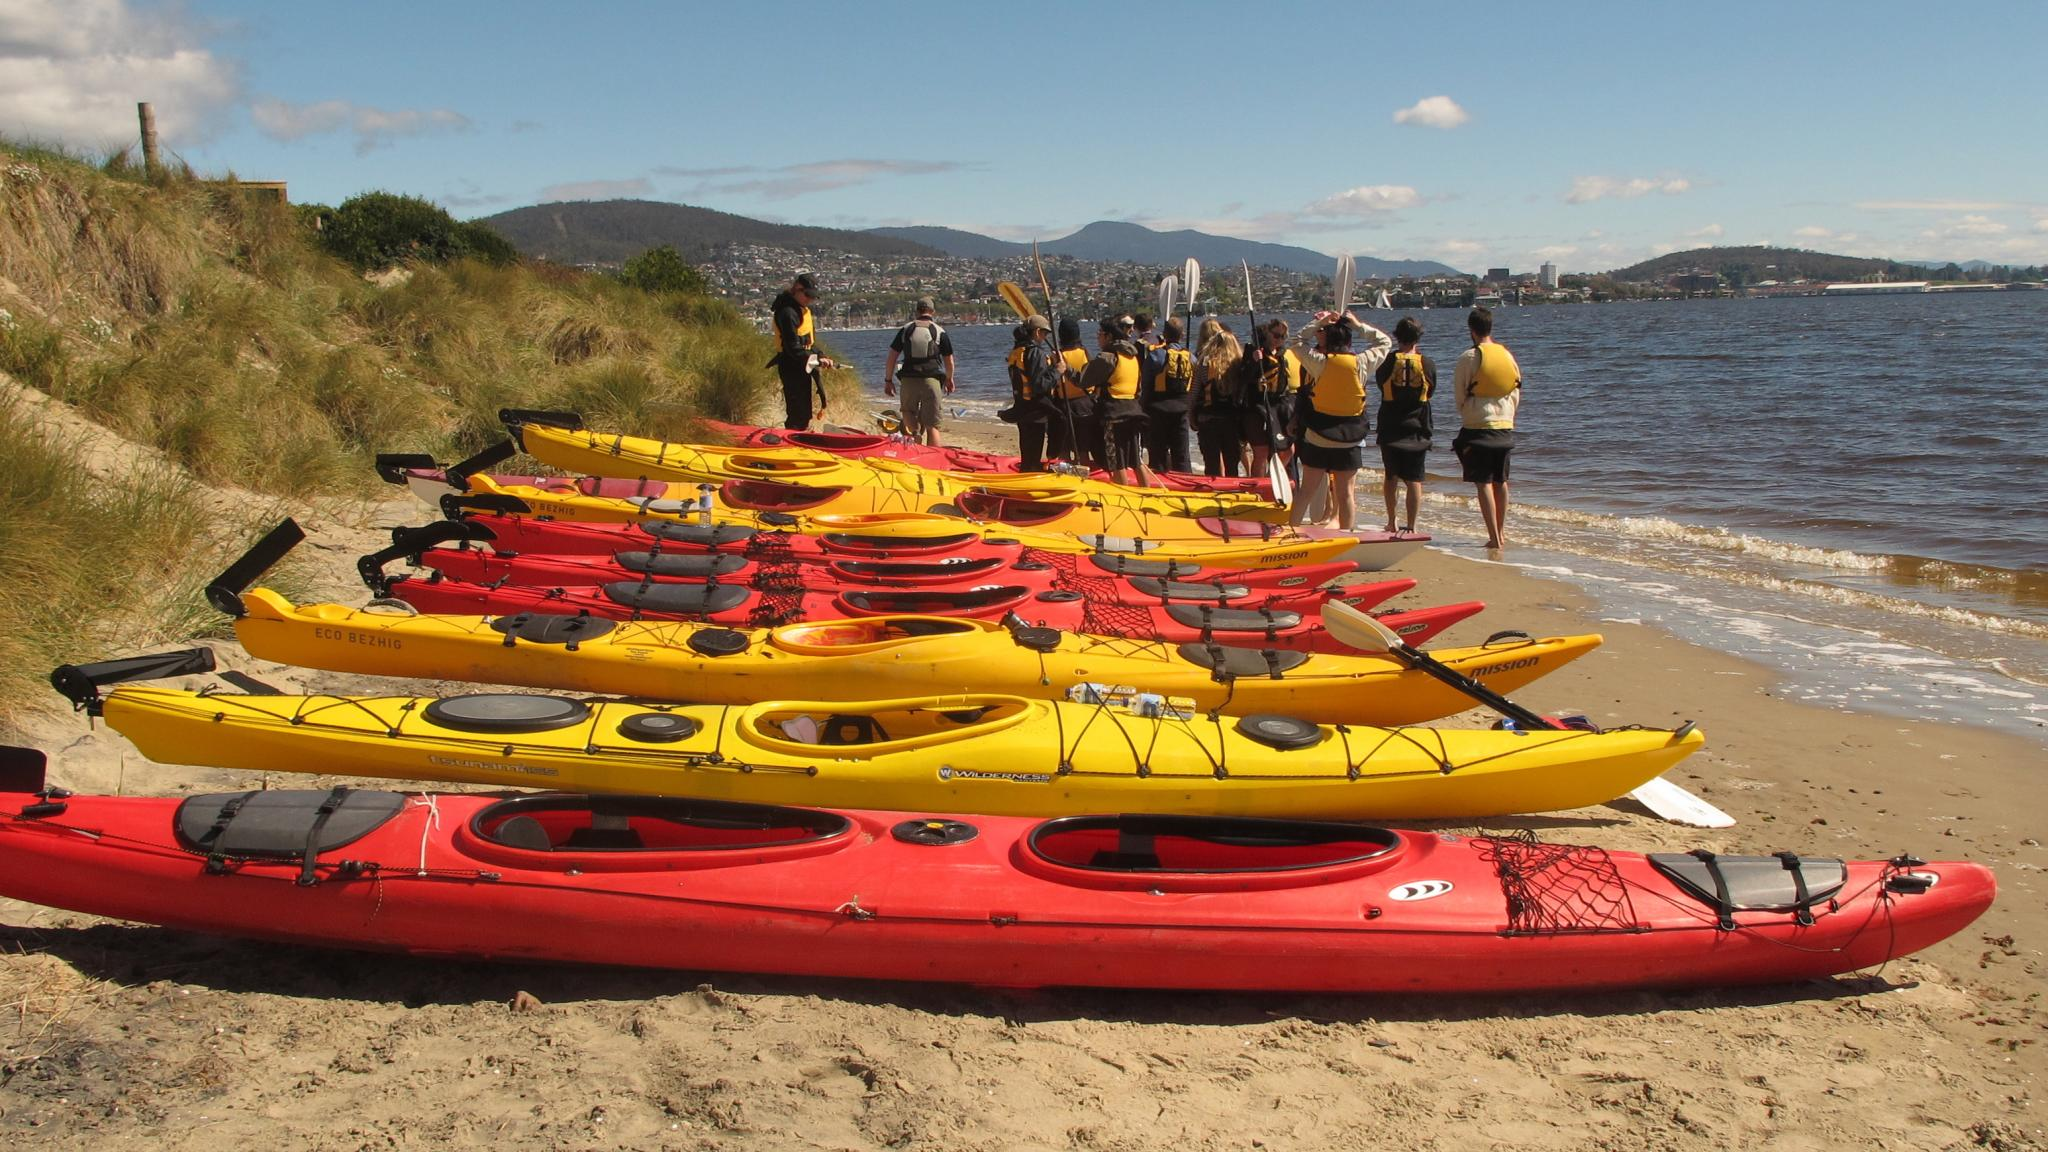 Roaring 40ºs Kayaking - Sea kayaking group adventure activity, Hobart, Tasmania